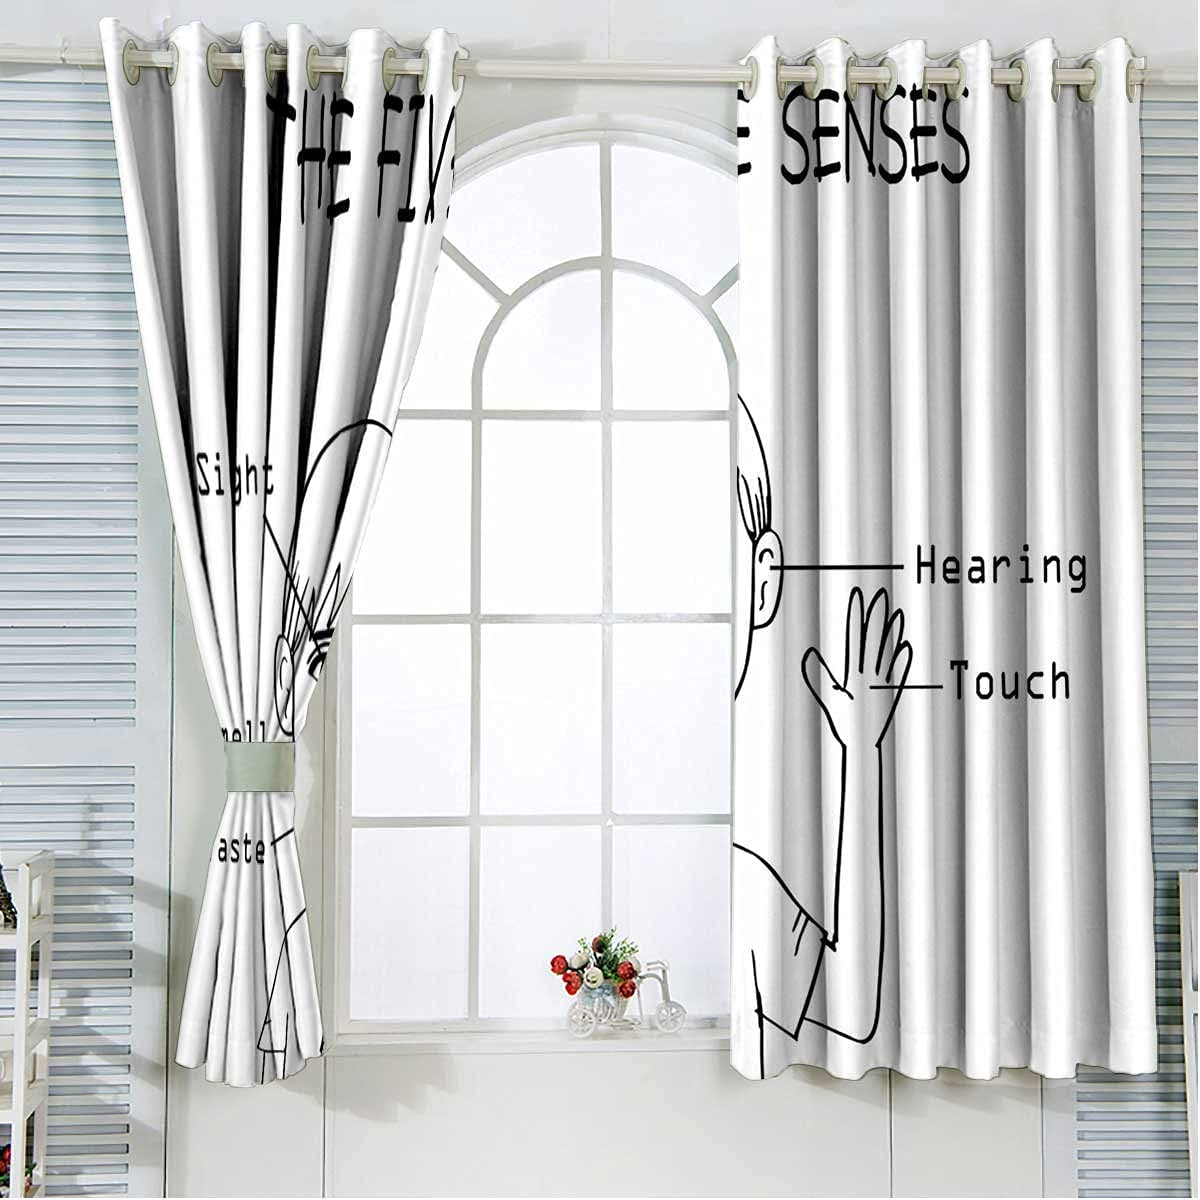 mart Cash special price Short Curtain 84 Inches Length 5 Boy Light Blocking D Senses on